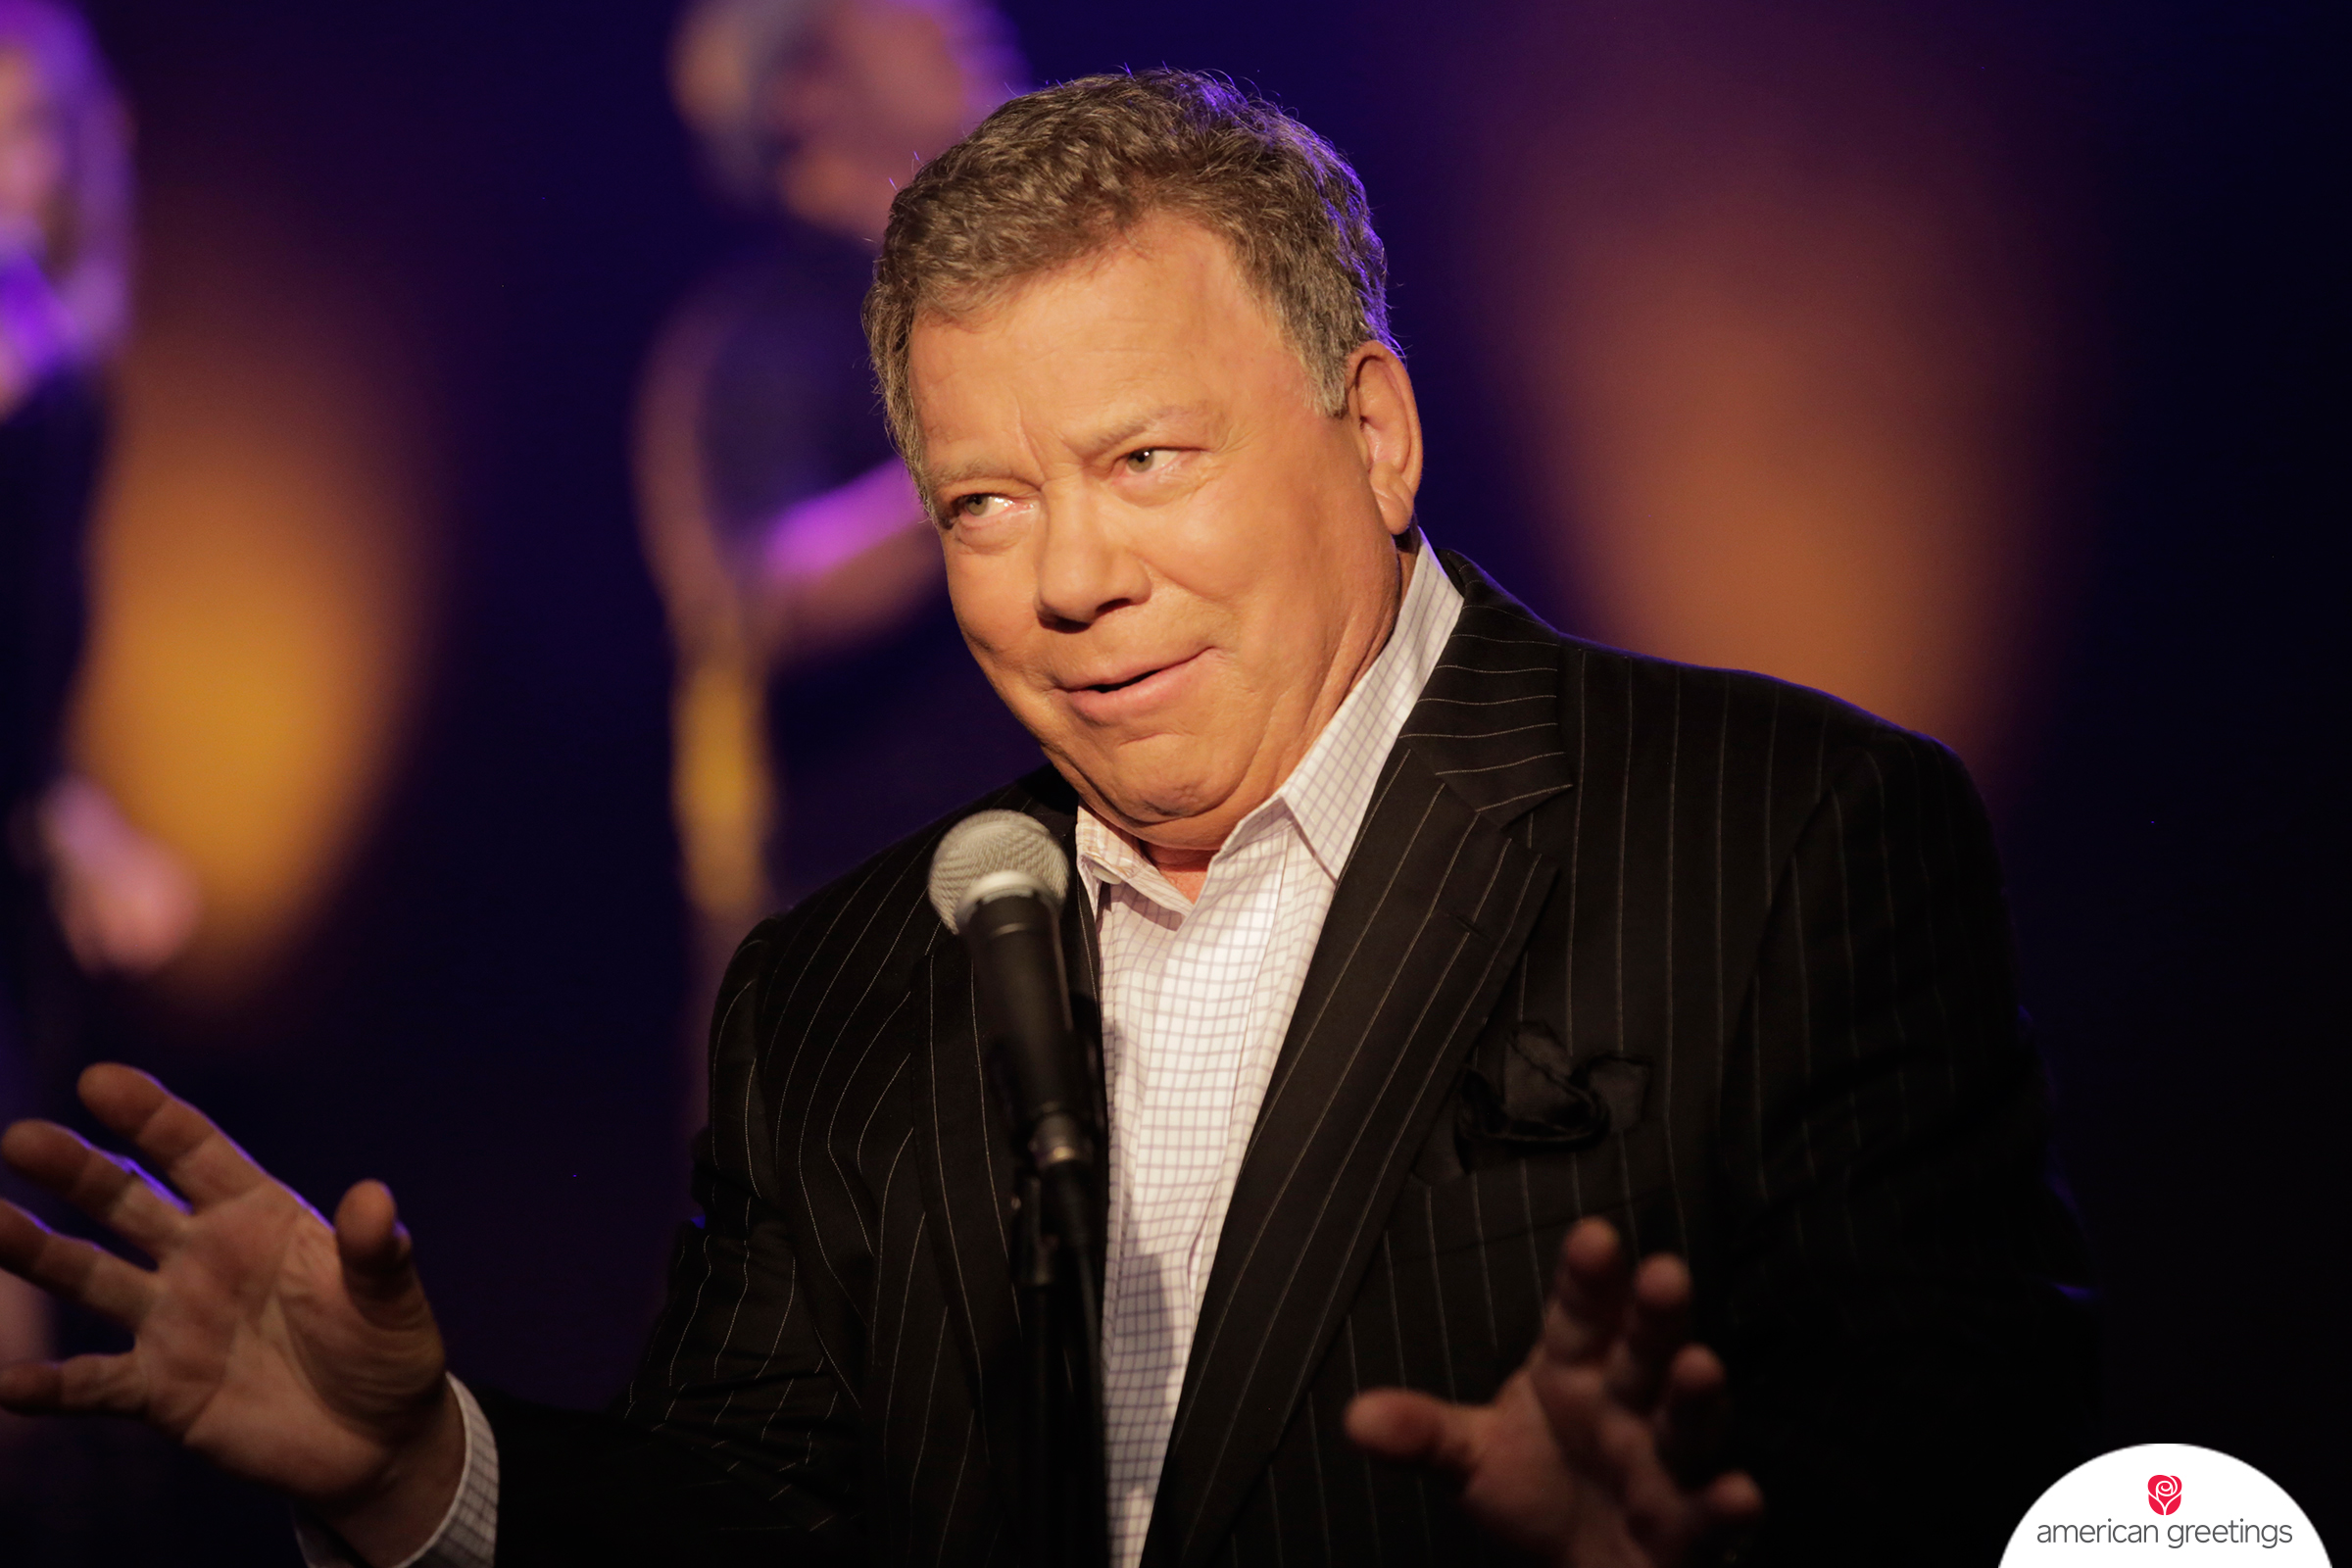 Sing Dance Celebrate And Shout With New William Shatner Video